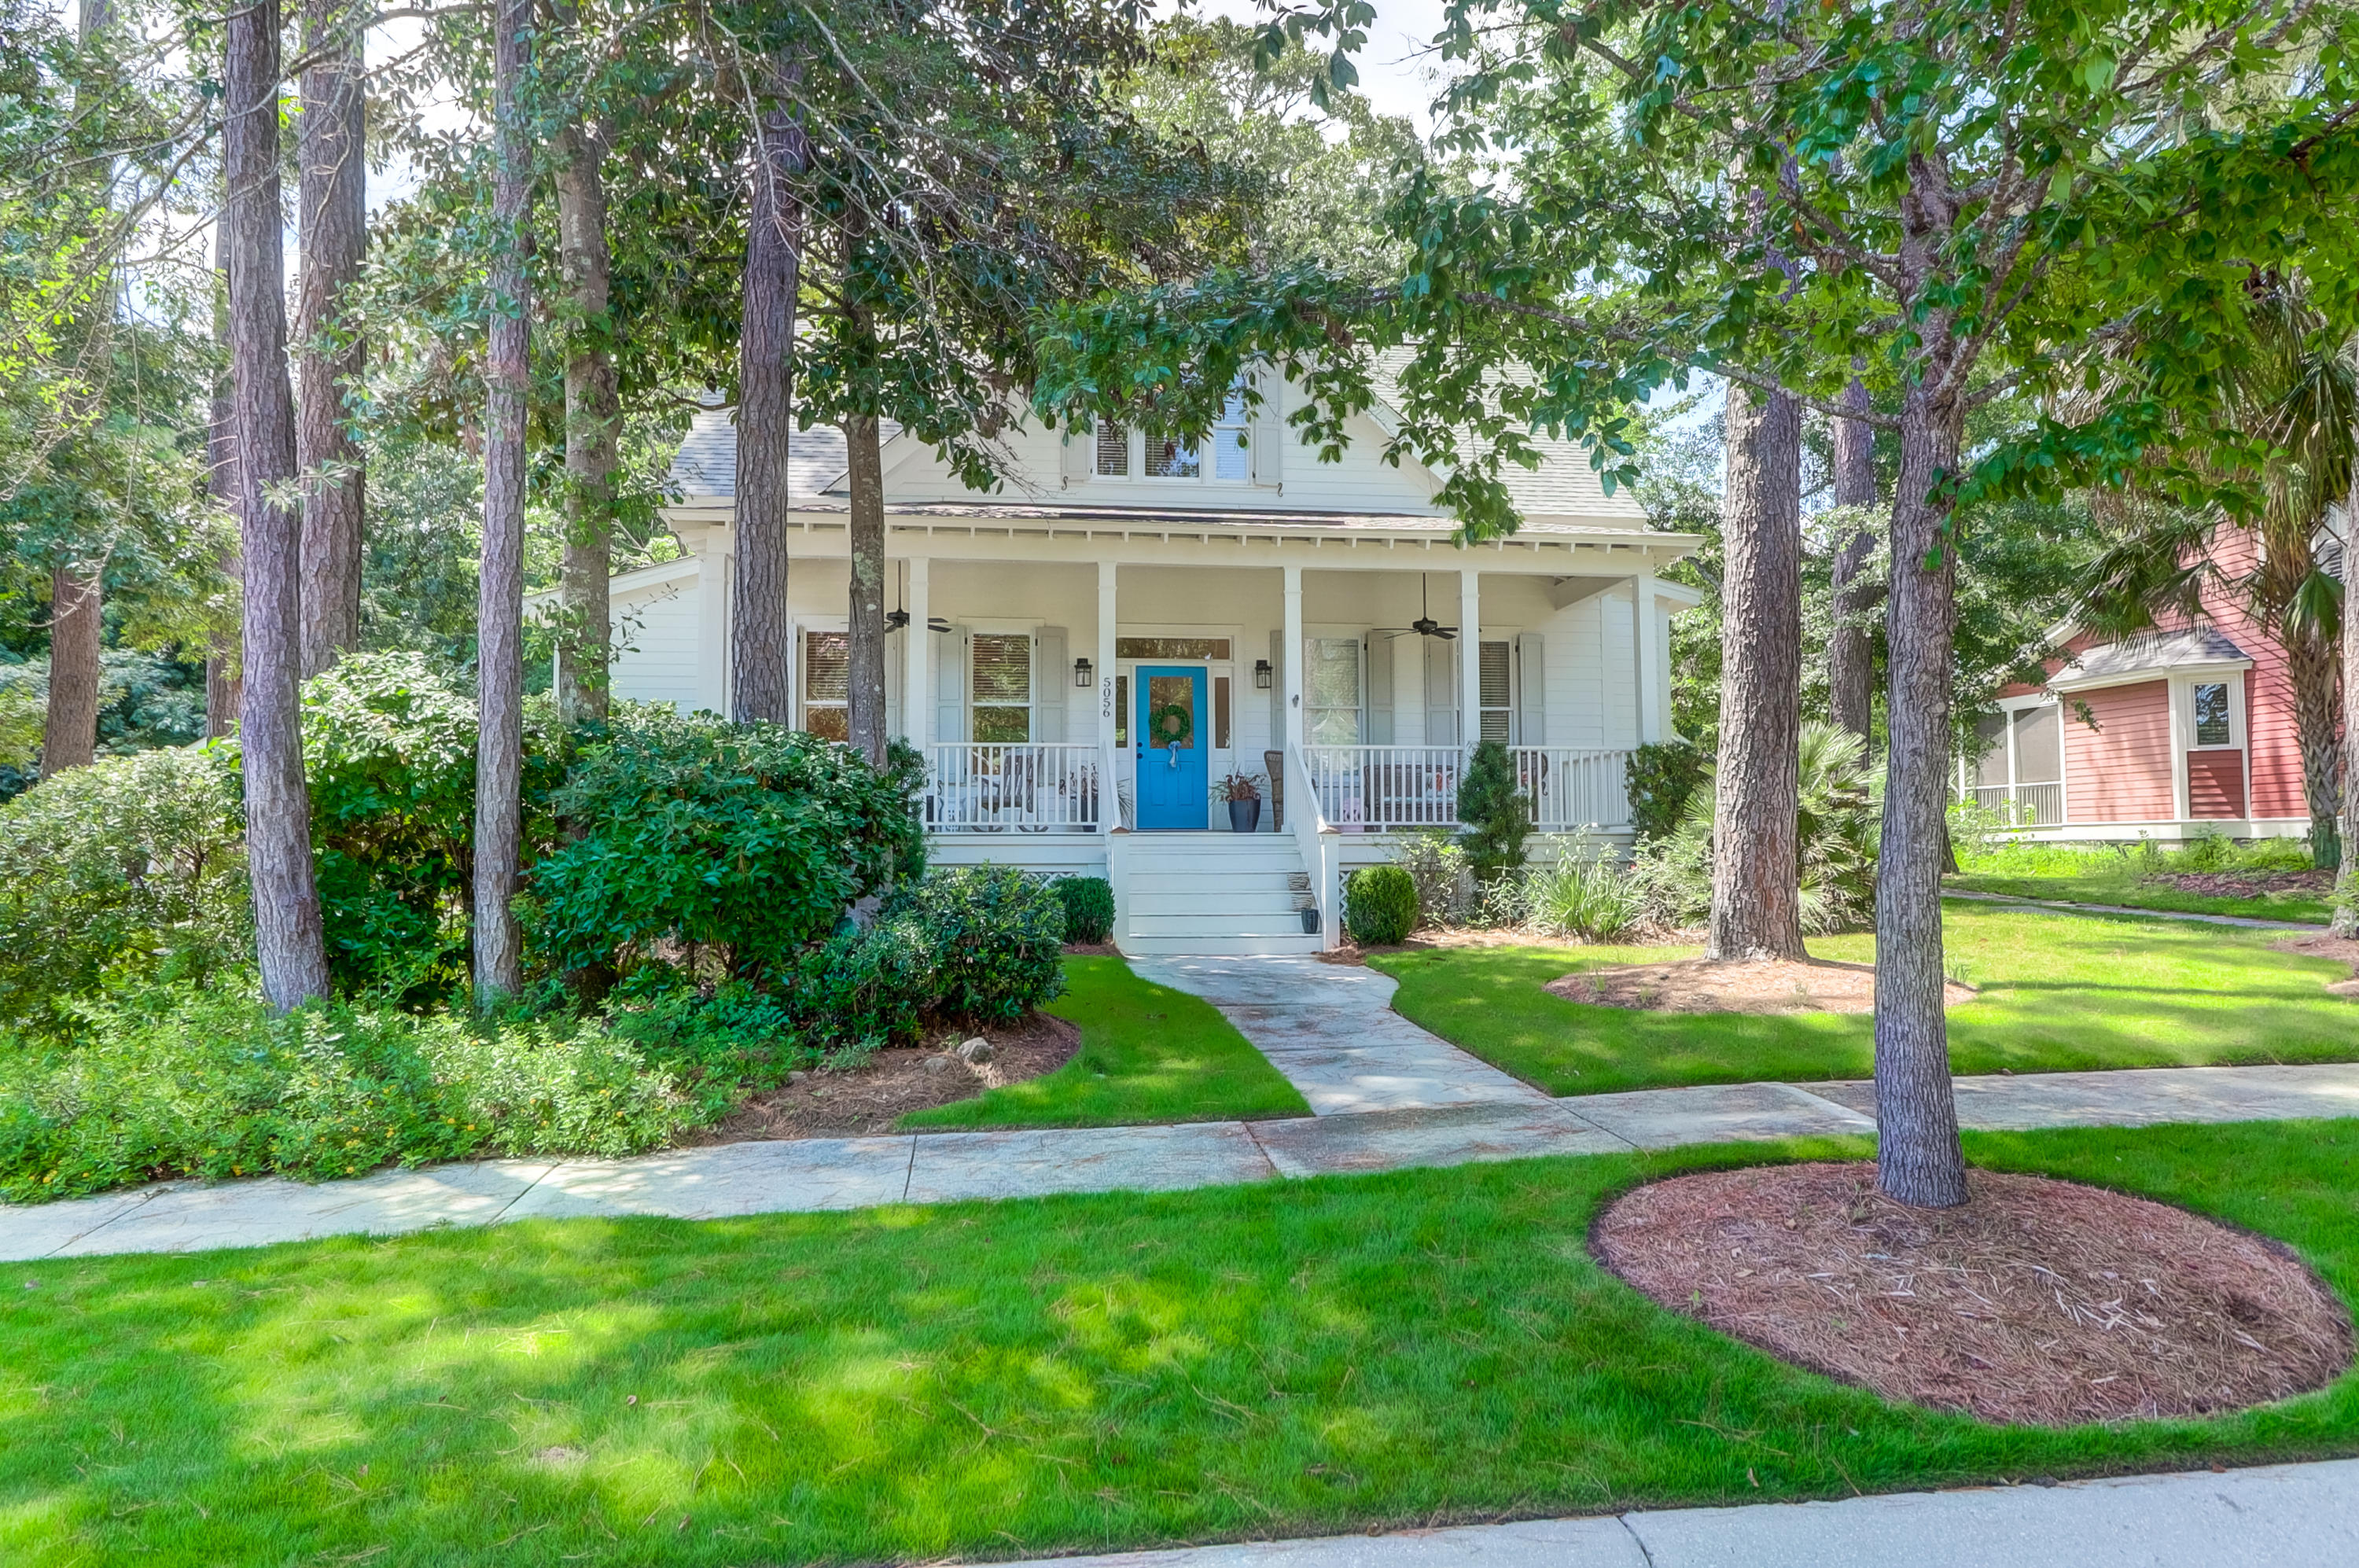 The Villages In St Johns Woods Homes For Sale - 5056 Coral Reef Dr, Johns Island, SC - 33